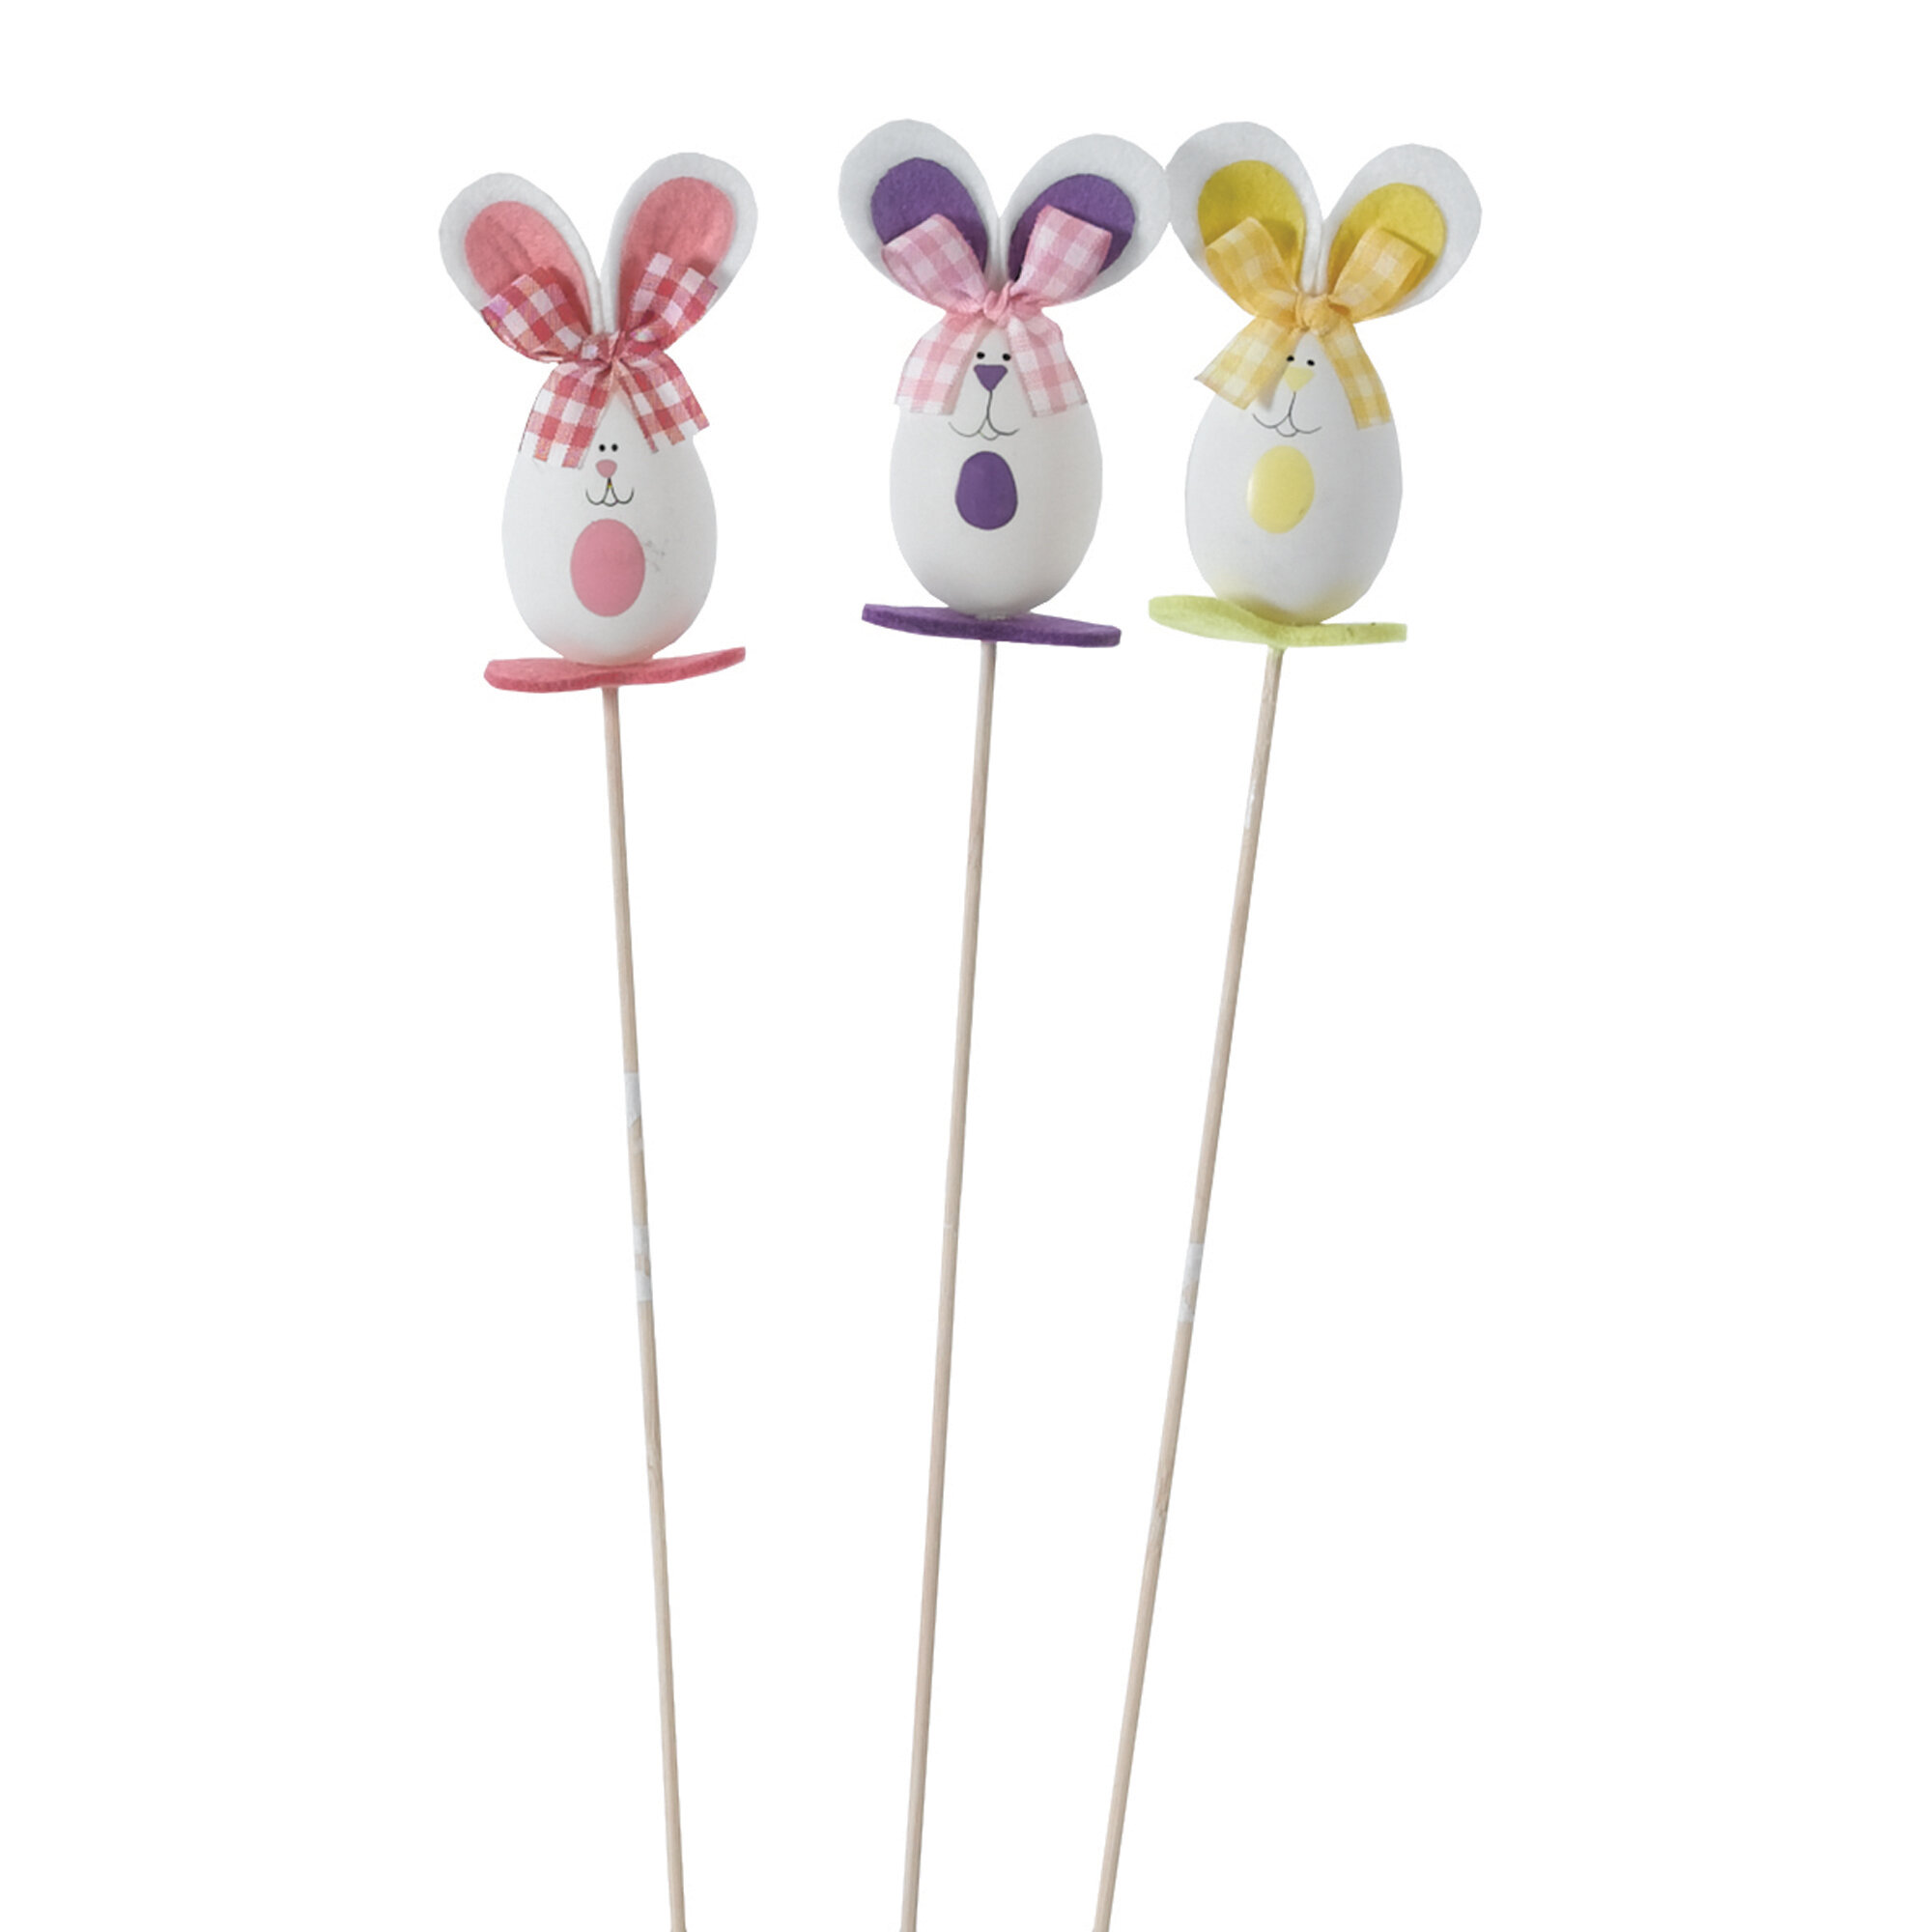 Oddity Inc. Whimsical Easter Bunny Picks (Set of 3)